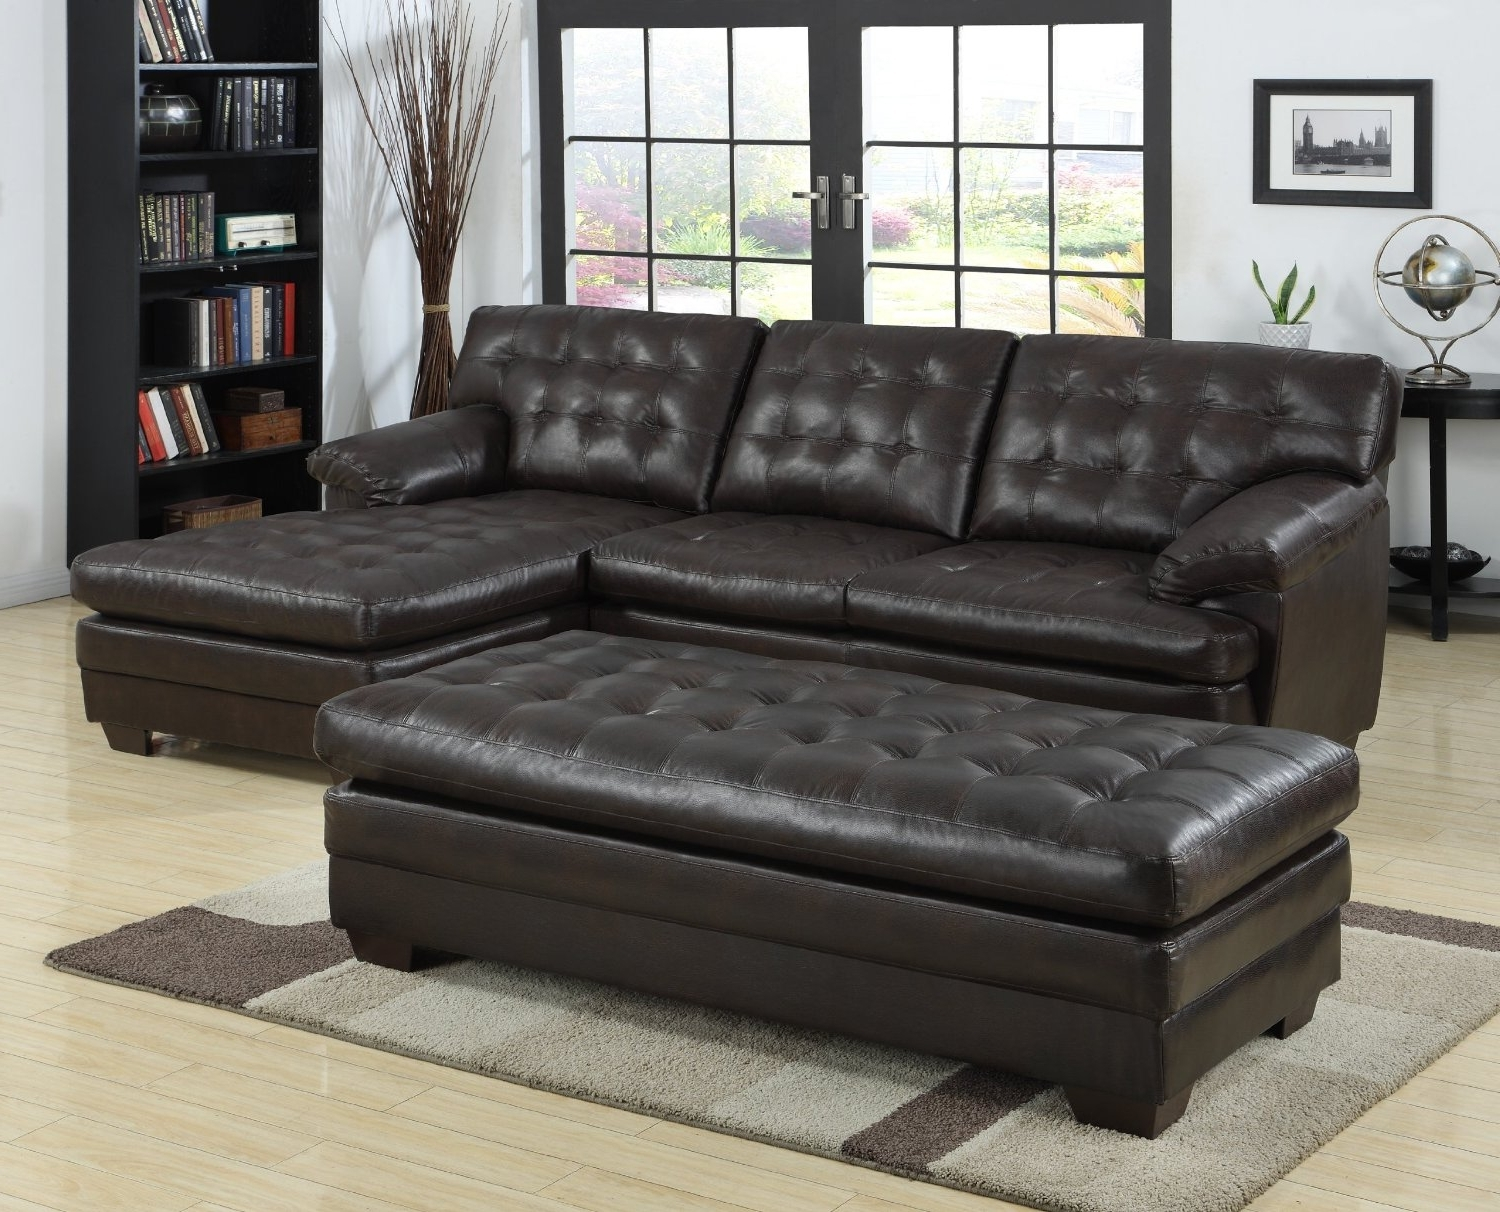 Black Leather Sectionals With Chaise Intended For 2017 Black Leather Sectional With Chaise Sectional Sofas With Recliners (View 3 of 15)